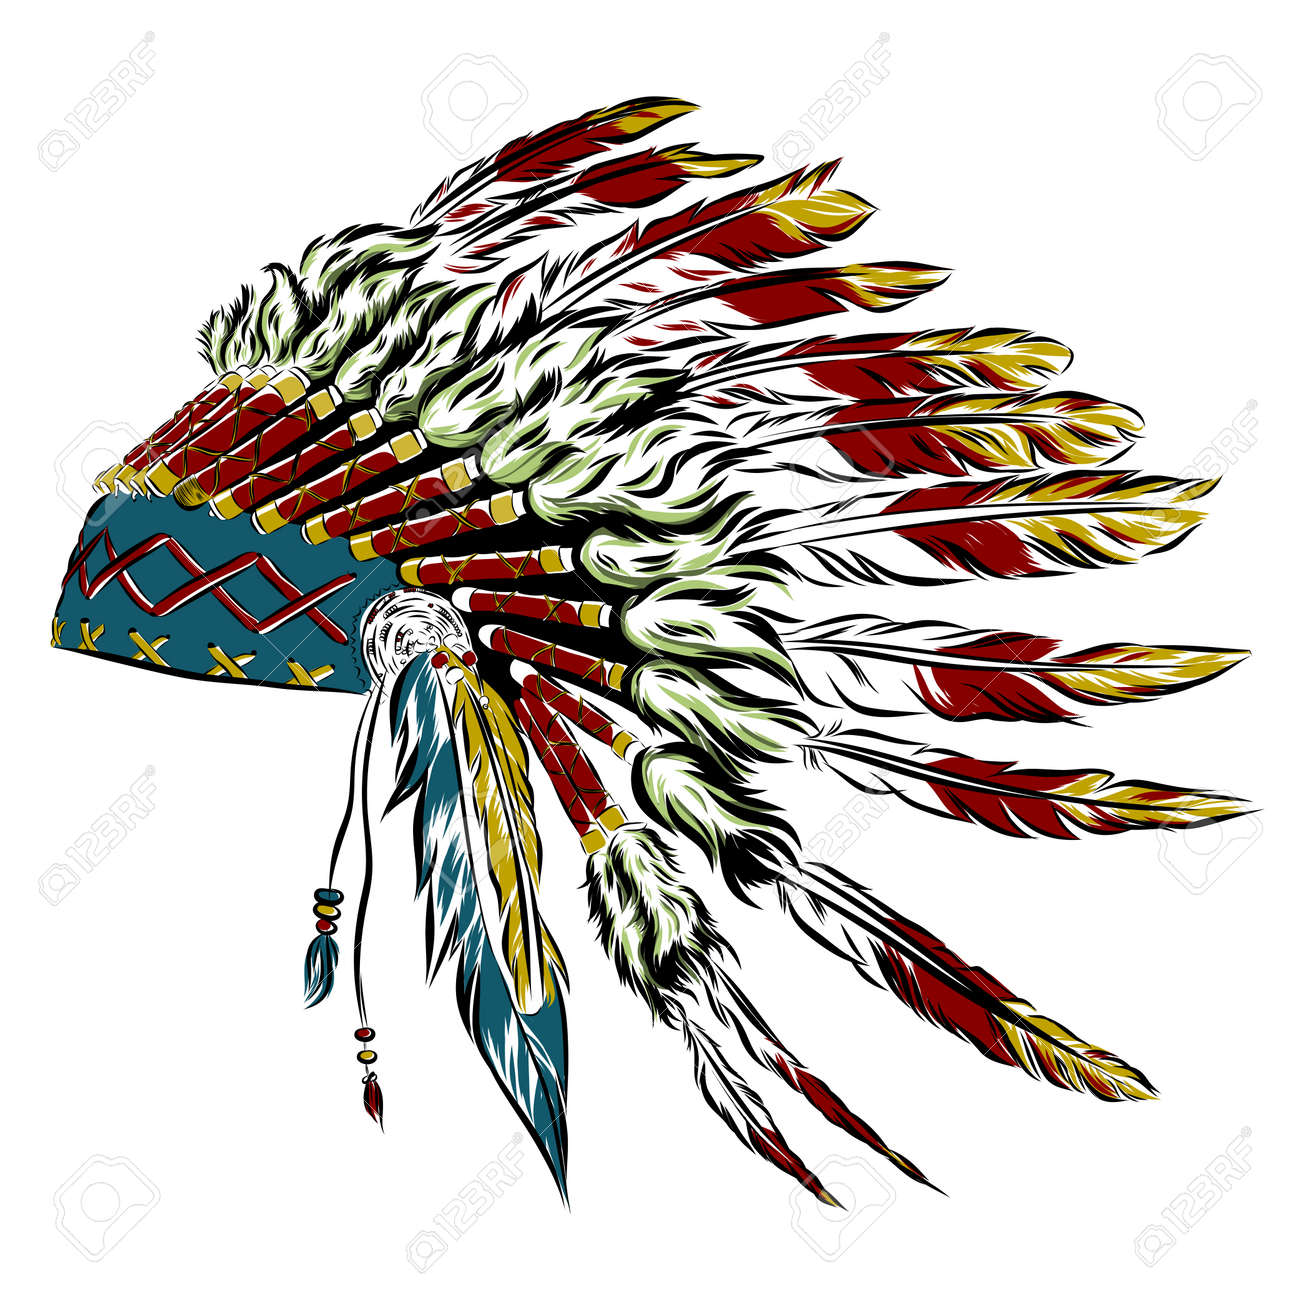 native american indian headdress with feathers in a sketch style rh 123rf com indian headdress clipart free Indian Headdress Drawing